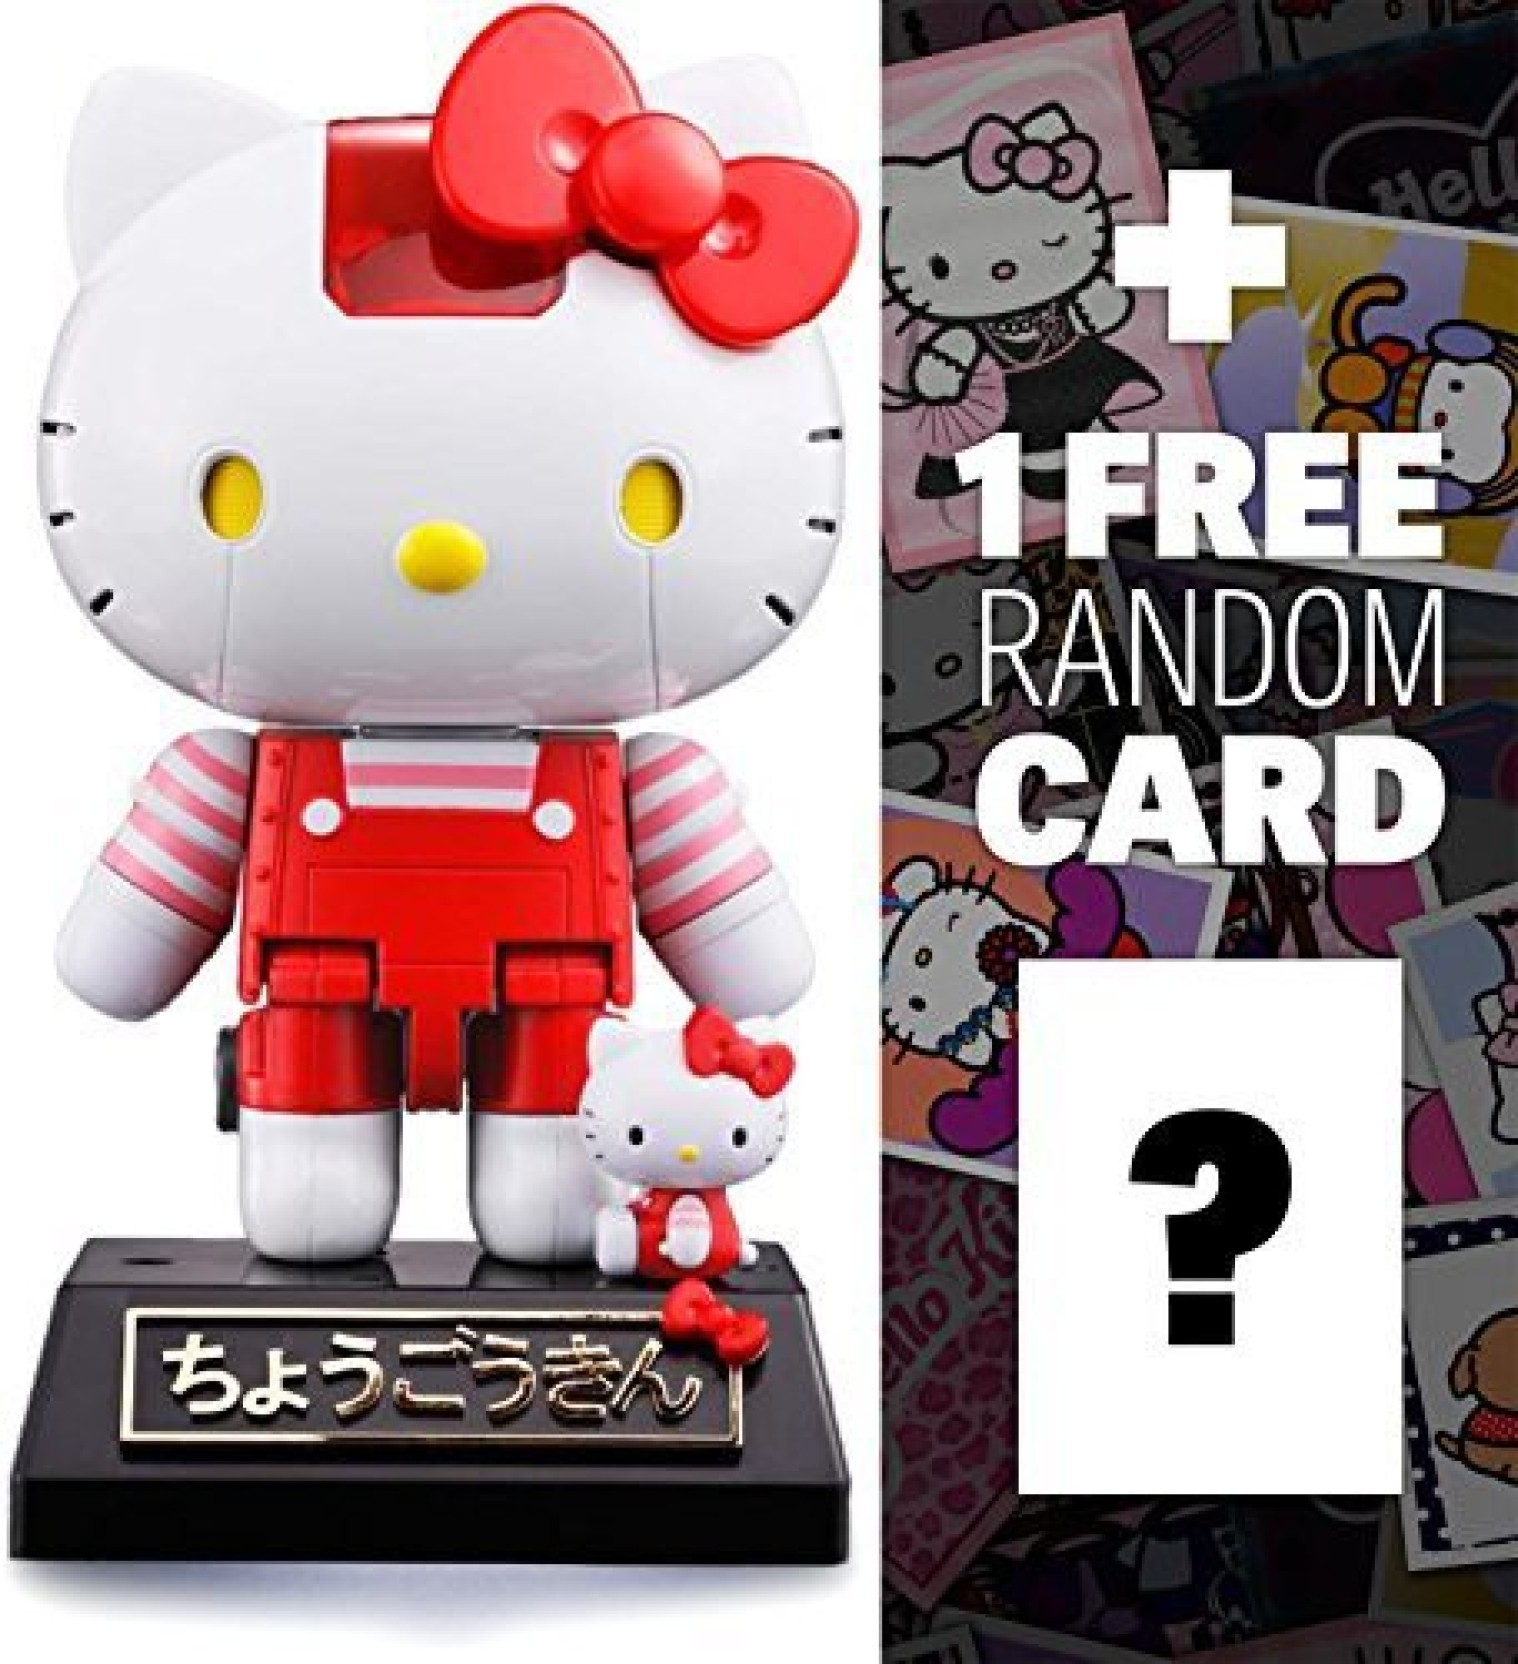 ee22d791d Hello Kitty (Red Jumpsuit): Chogokin X Die-Cast Series + 1 Free. ON OFFER